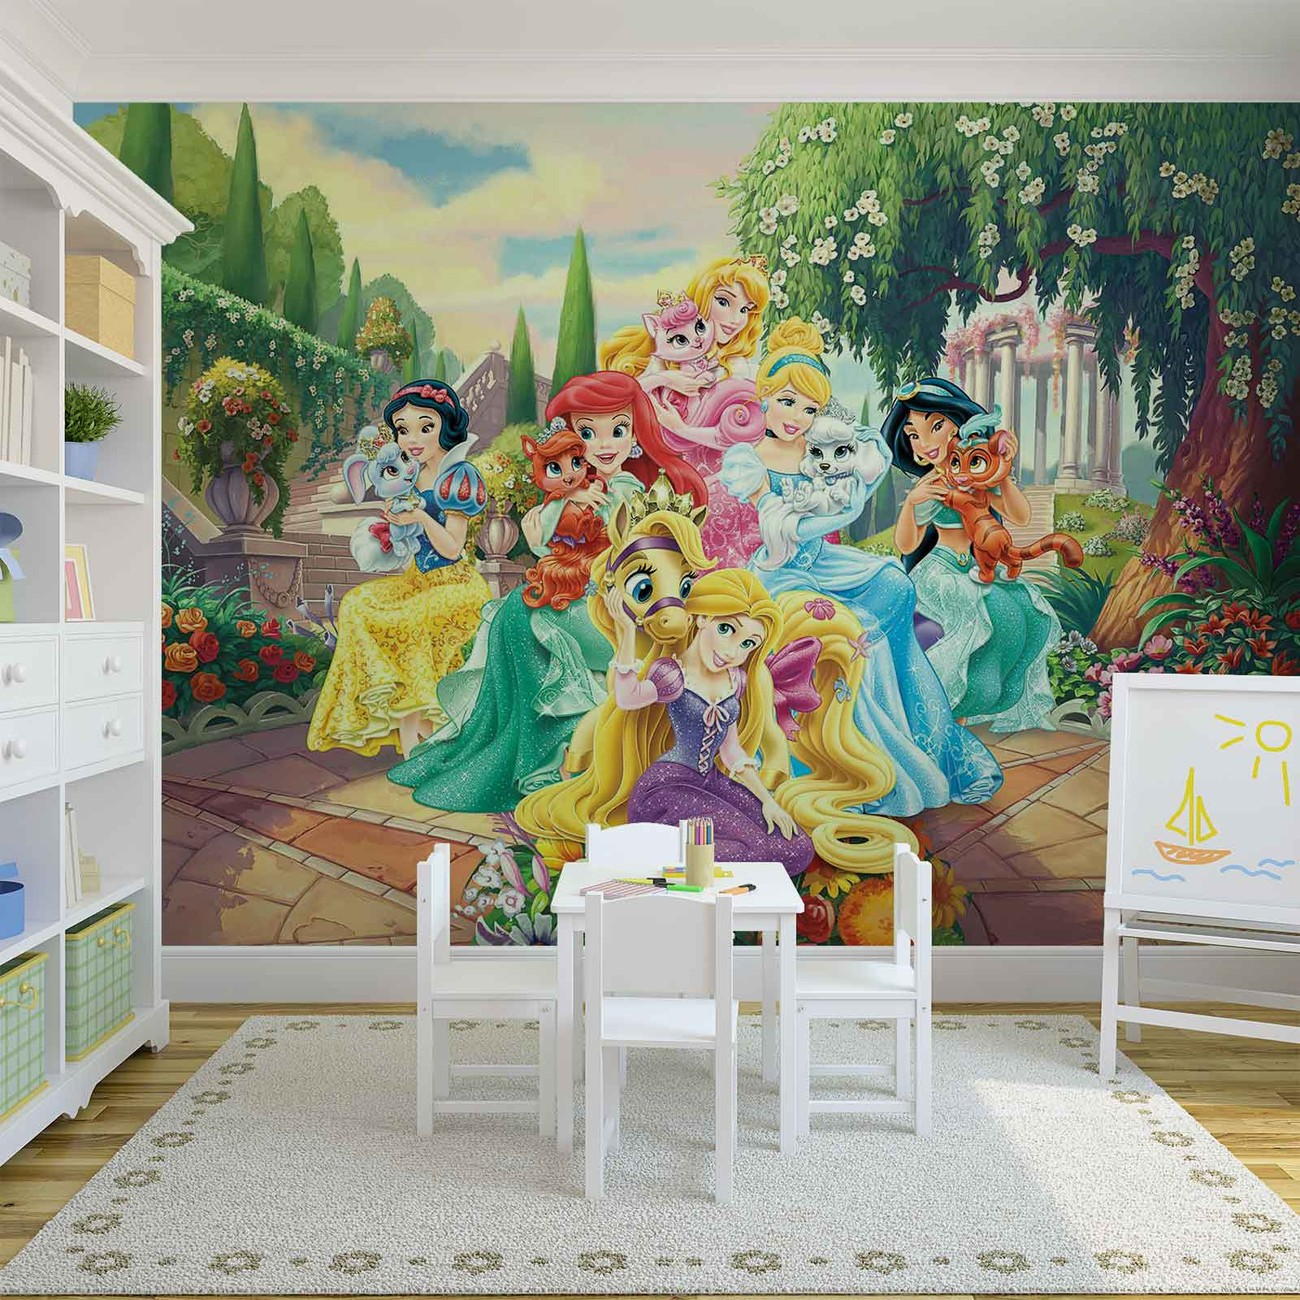 Disney princesses rapunzel ariel wall paper mural buy at for Disney princess mural asda